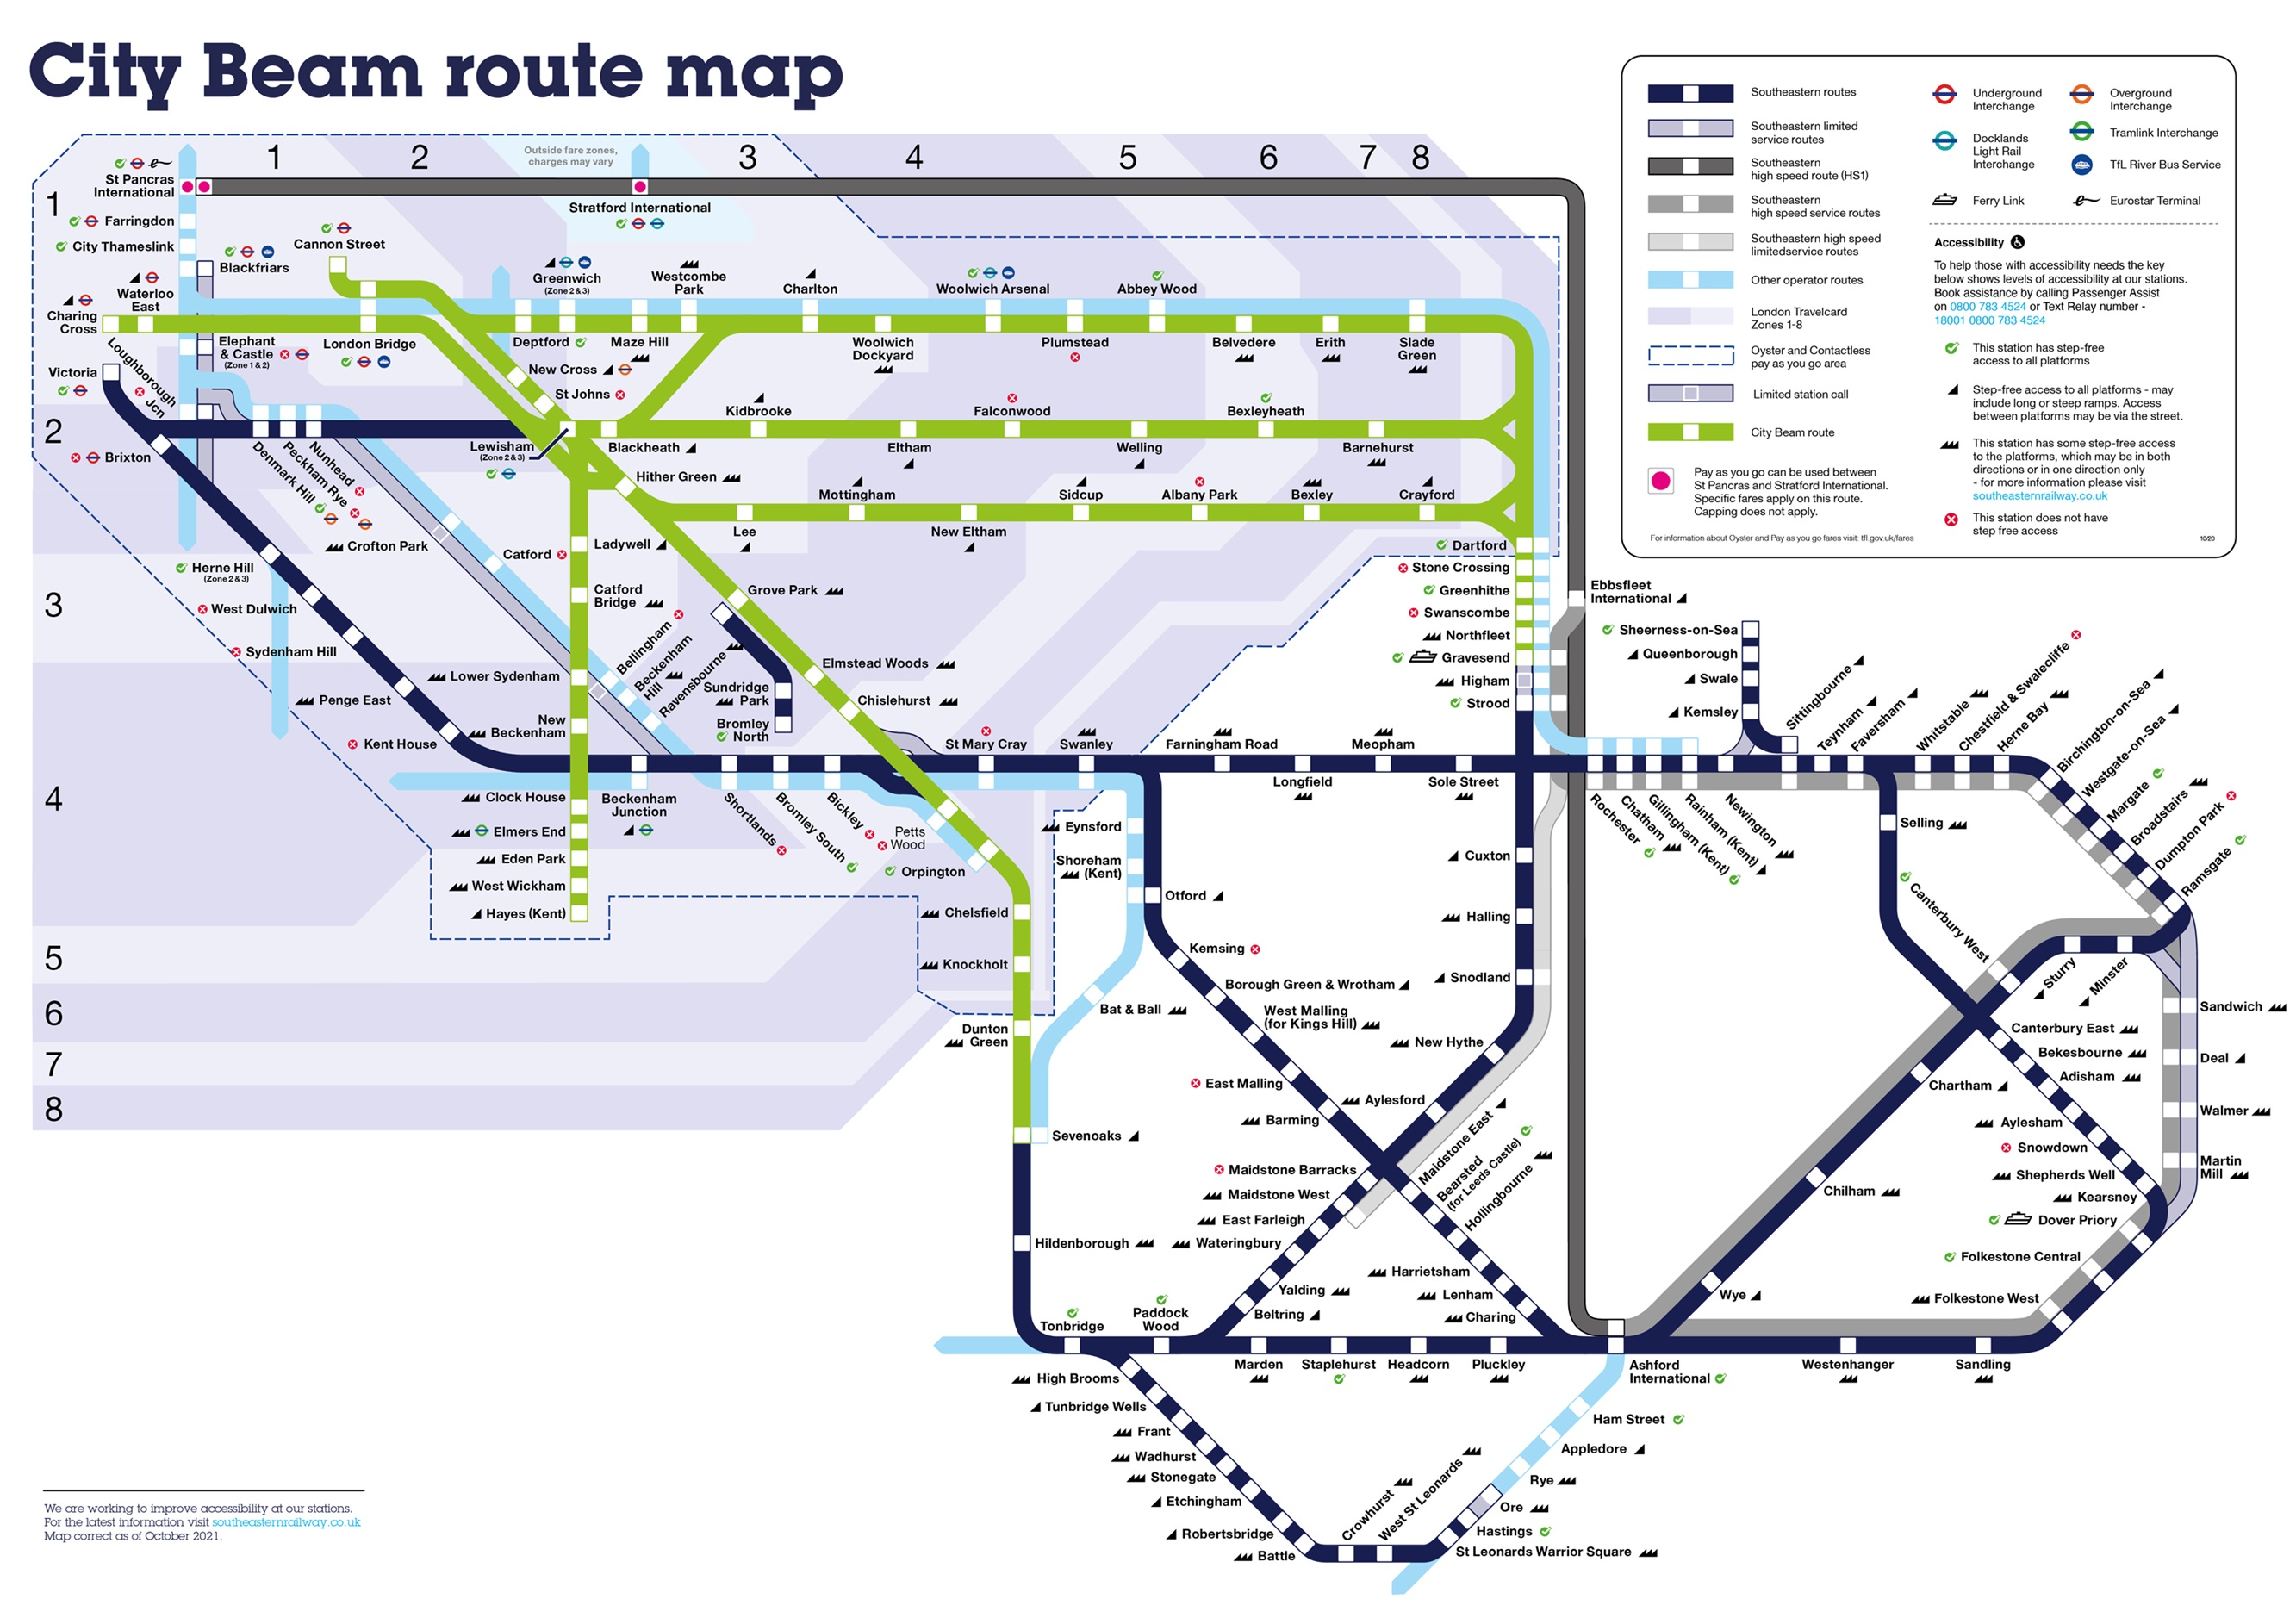 City Beam route map